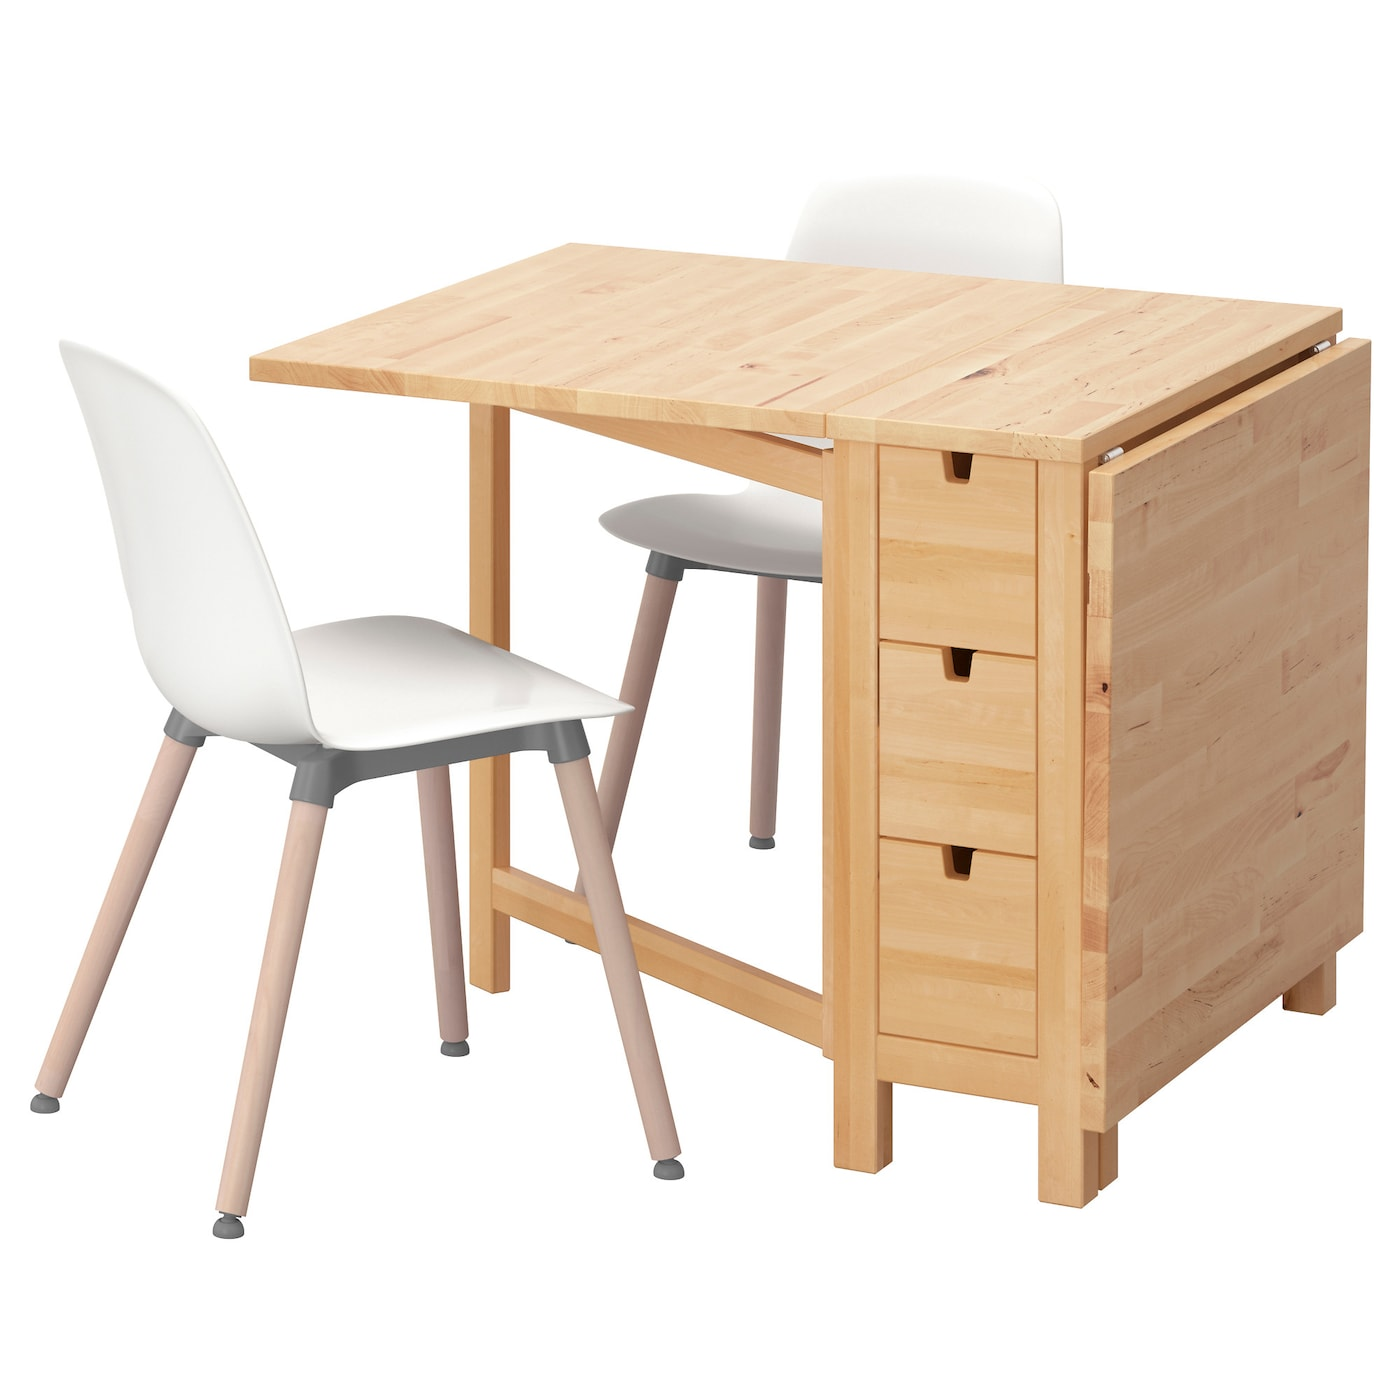 Ikea Norden Leifarne Table And 2 Chairs Solid Wood Is A Hardwearing Natural Material